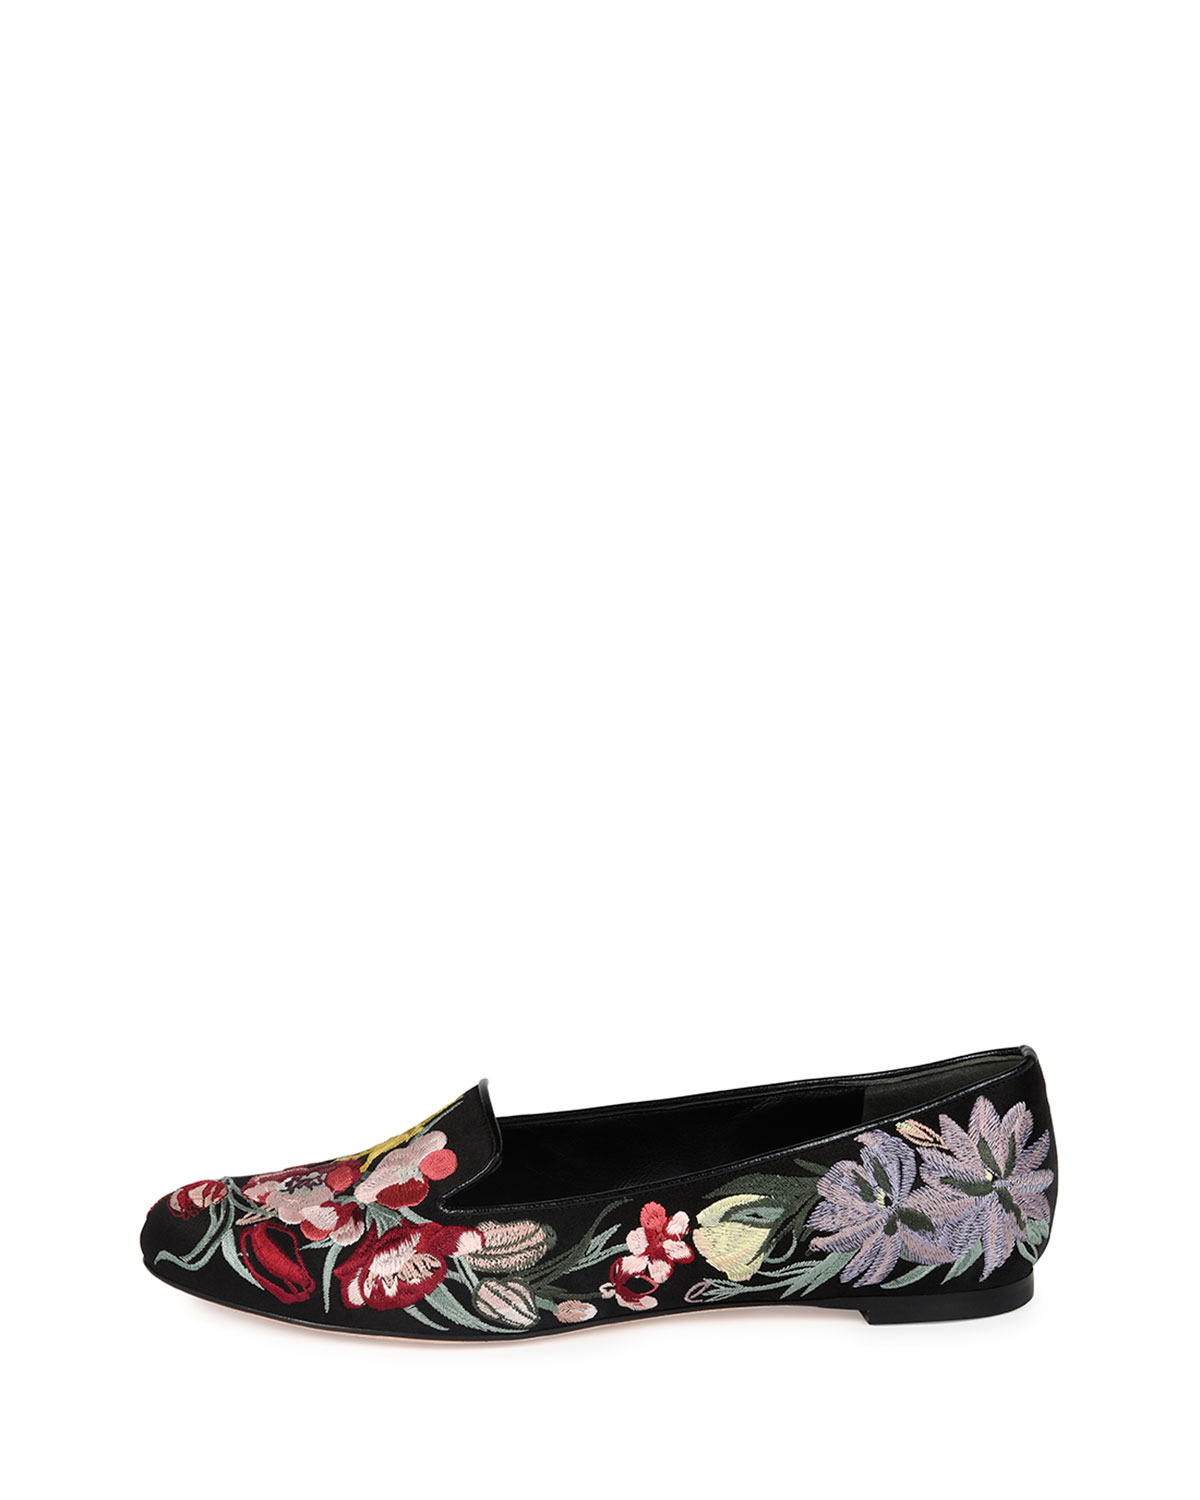 658d7a324a3 Lyst - Alexander McQueen Floral-Embroidered Satin Smoking Slippers ...